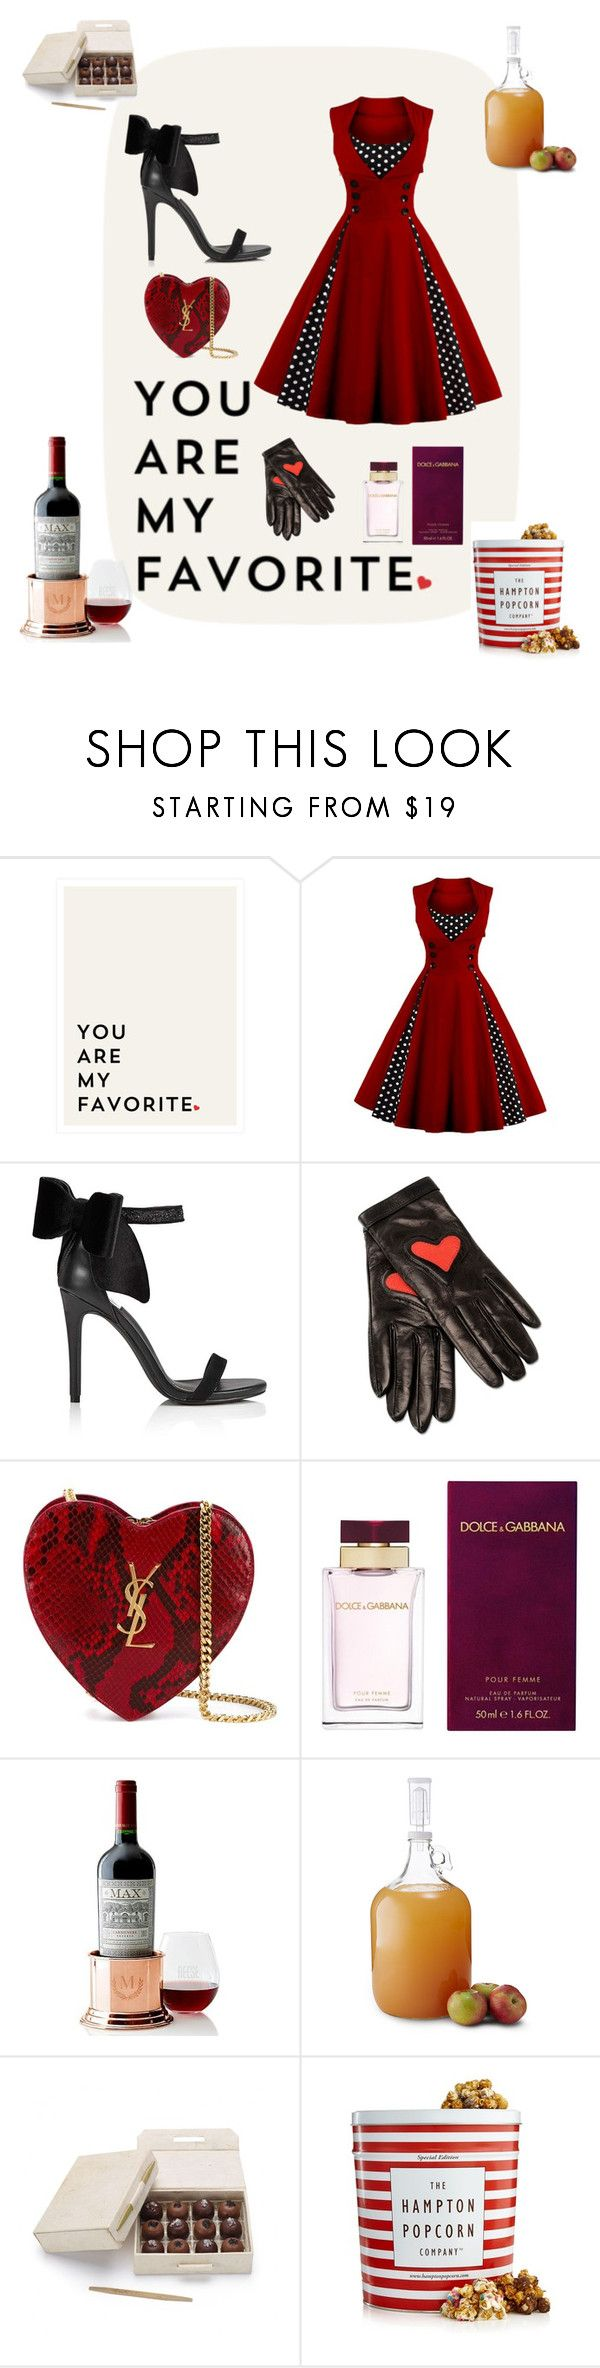 """""""it's de-lovely"""" by dadi13 ❤ liked on Polyvore featuring Miss Selfridge, Boutique Moschino, Yves Saint Laurent, Dolce&Gabbana, Mark & Graham, Brooklyn Brew Shop and The Hampton Popcorn Company"""